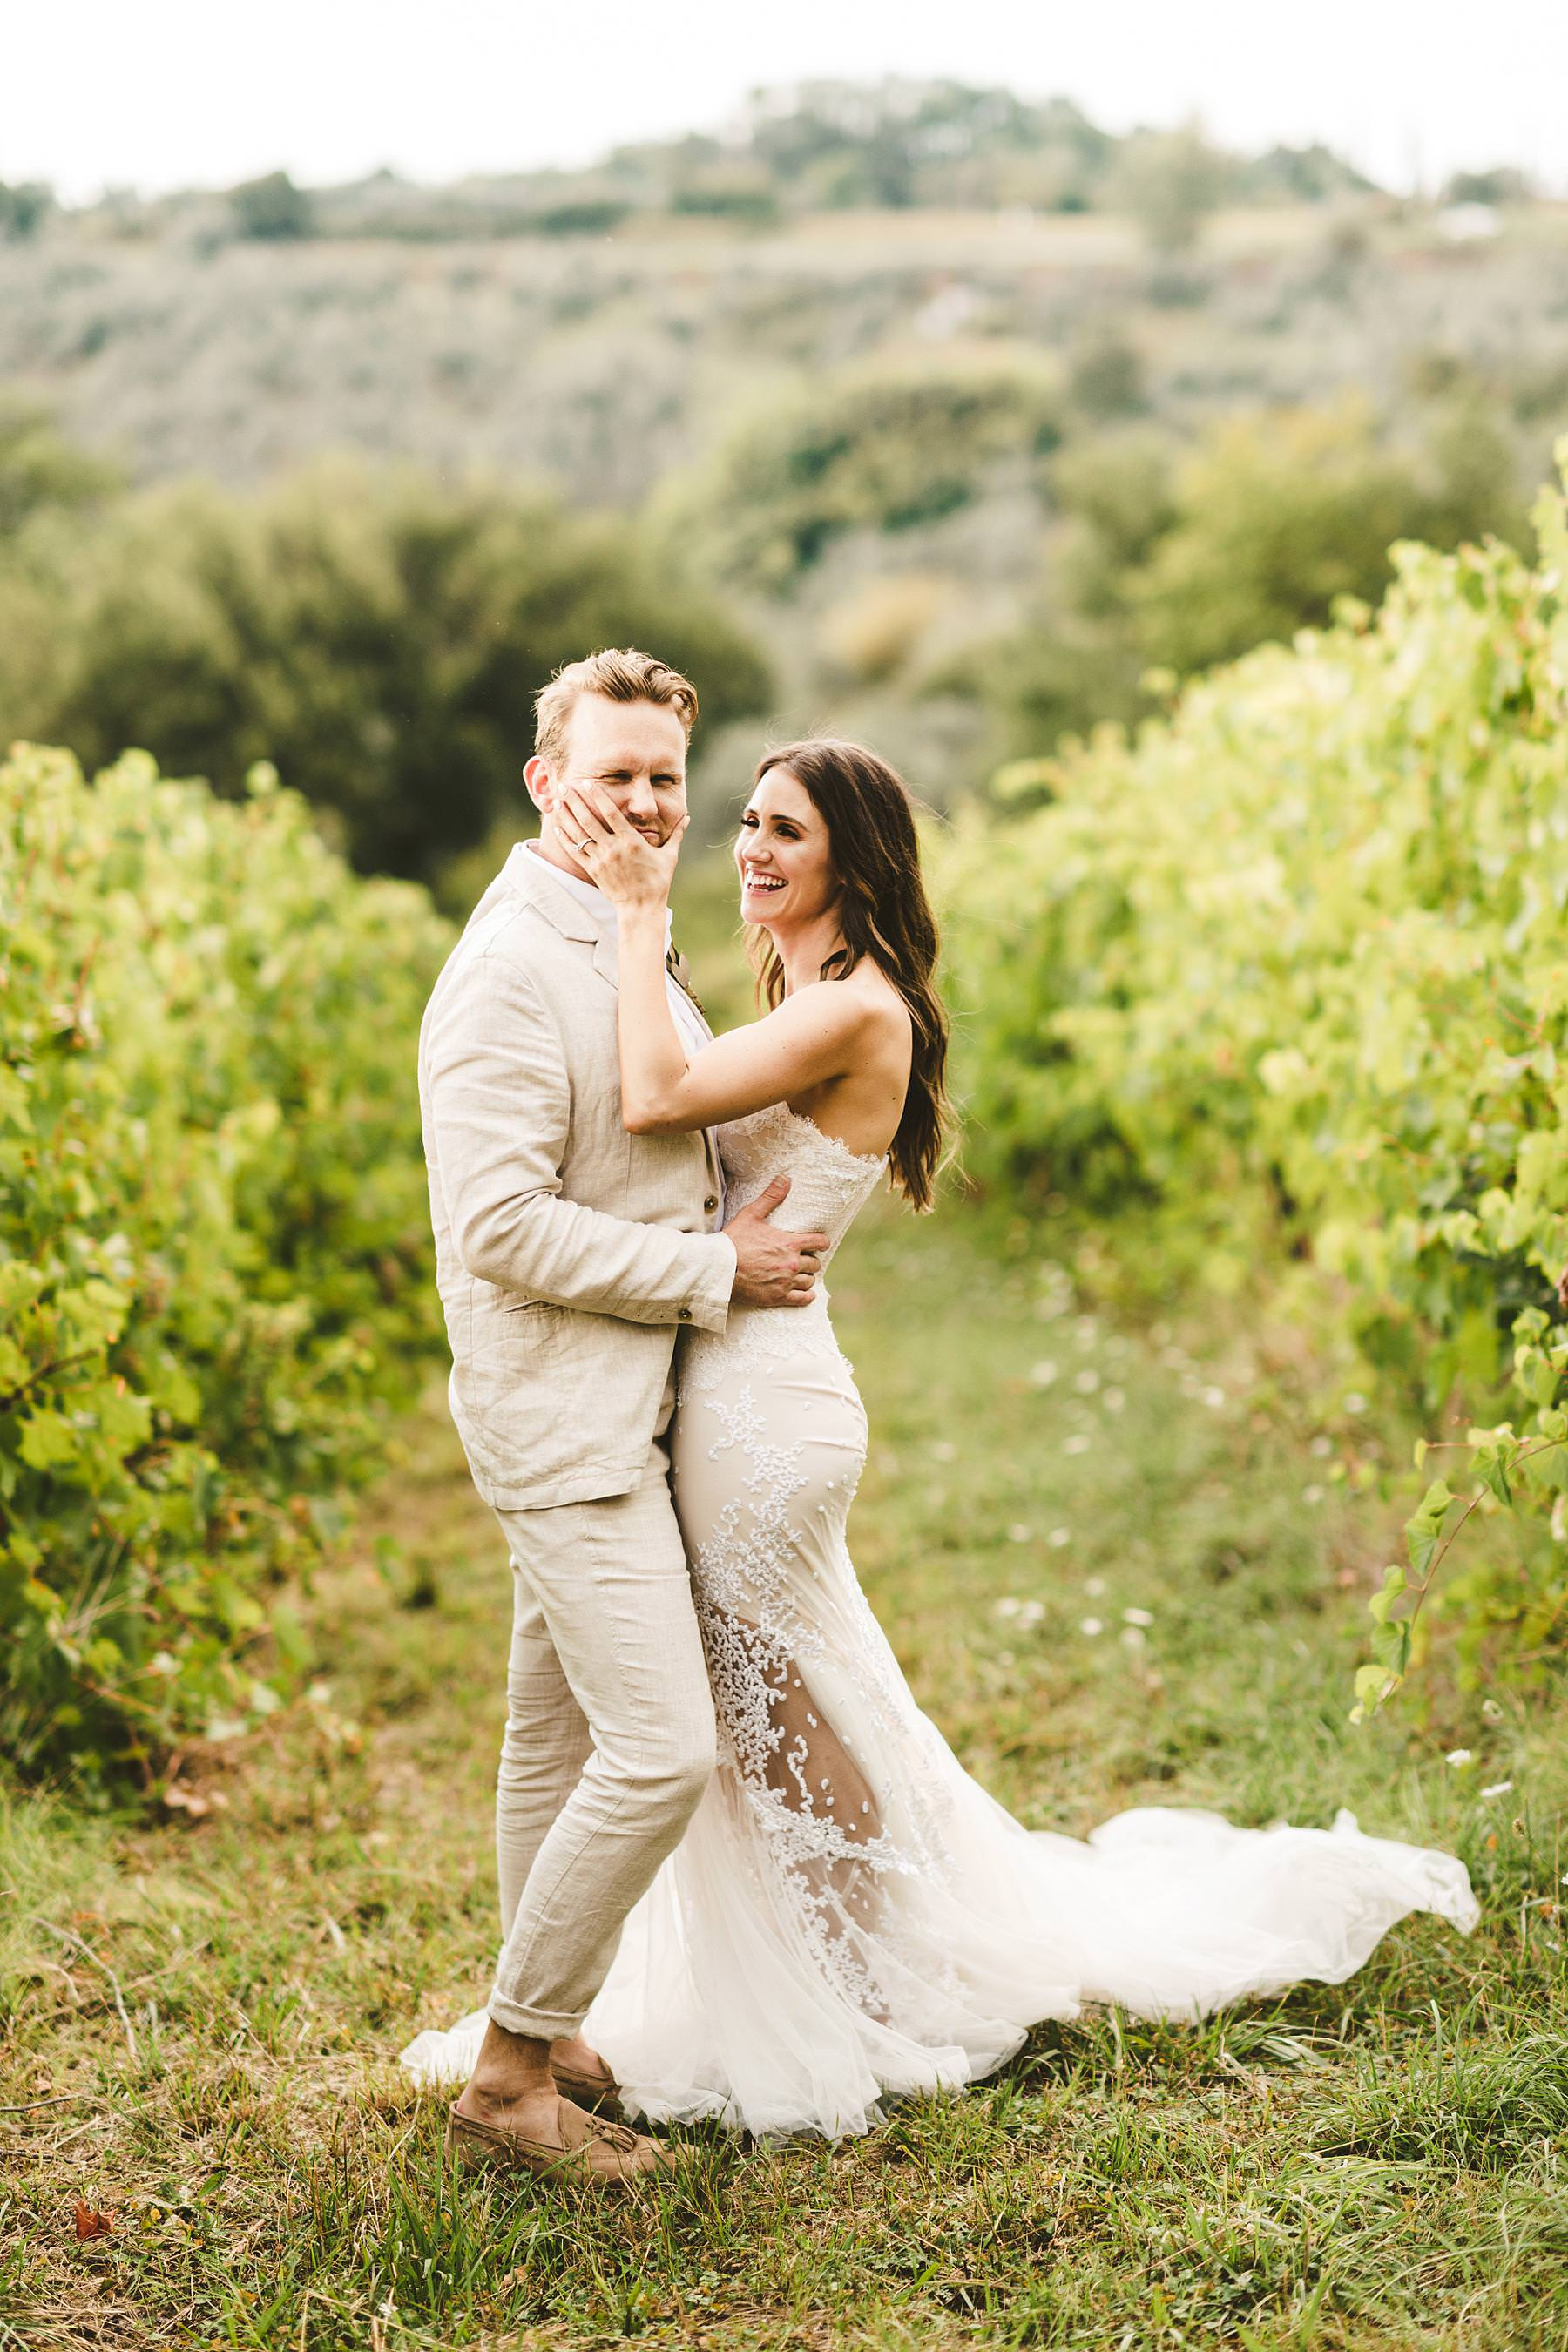 Lovely bride and groom portrait inside the vineyard in the Chianti countryside of Tuscany. Unusual modern wedding framed by the vineyard of Chianti